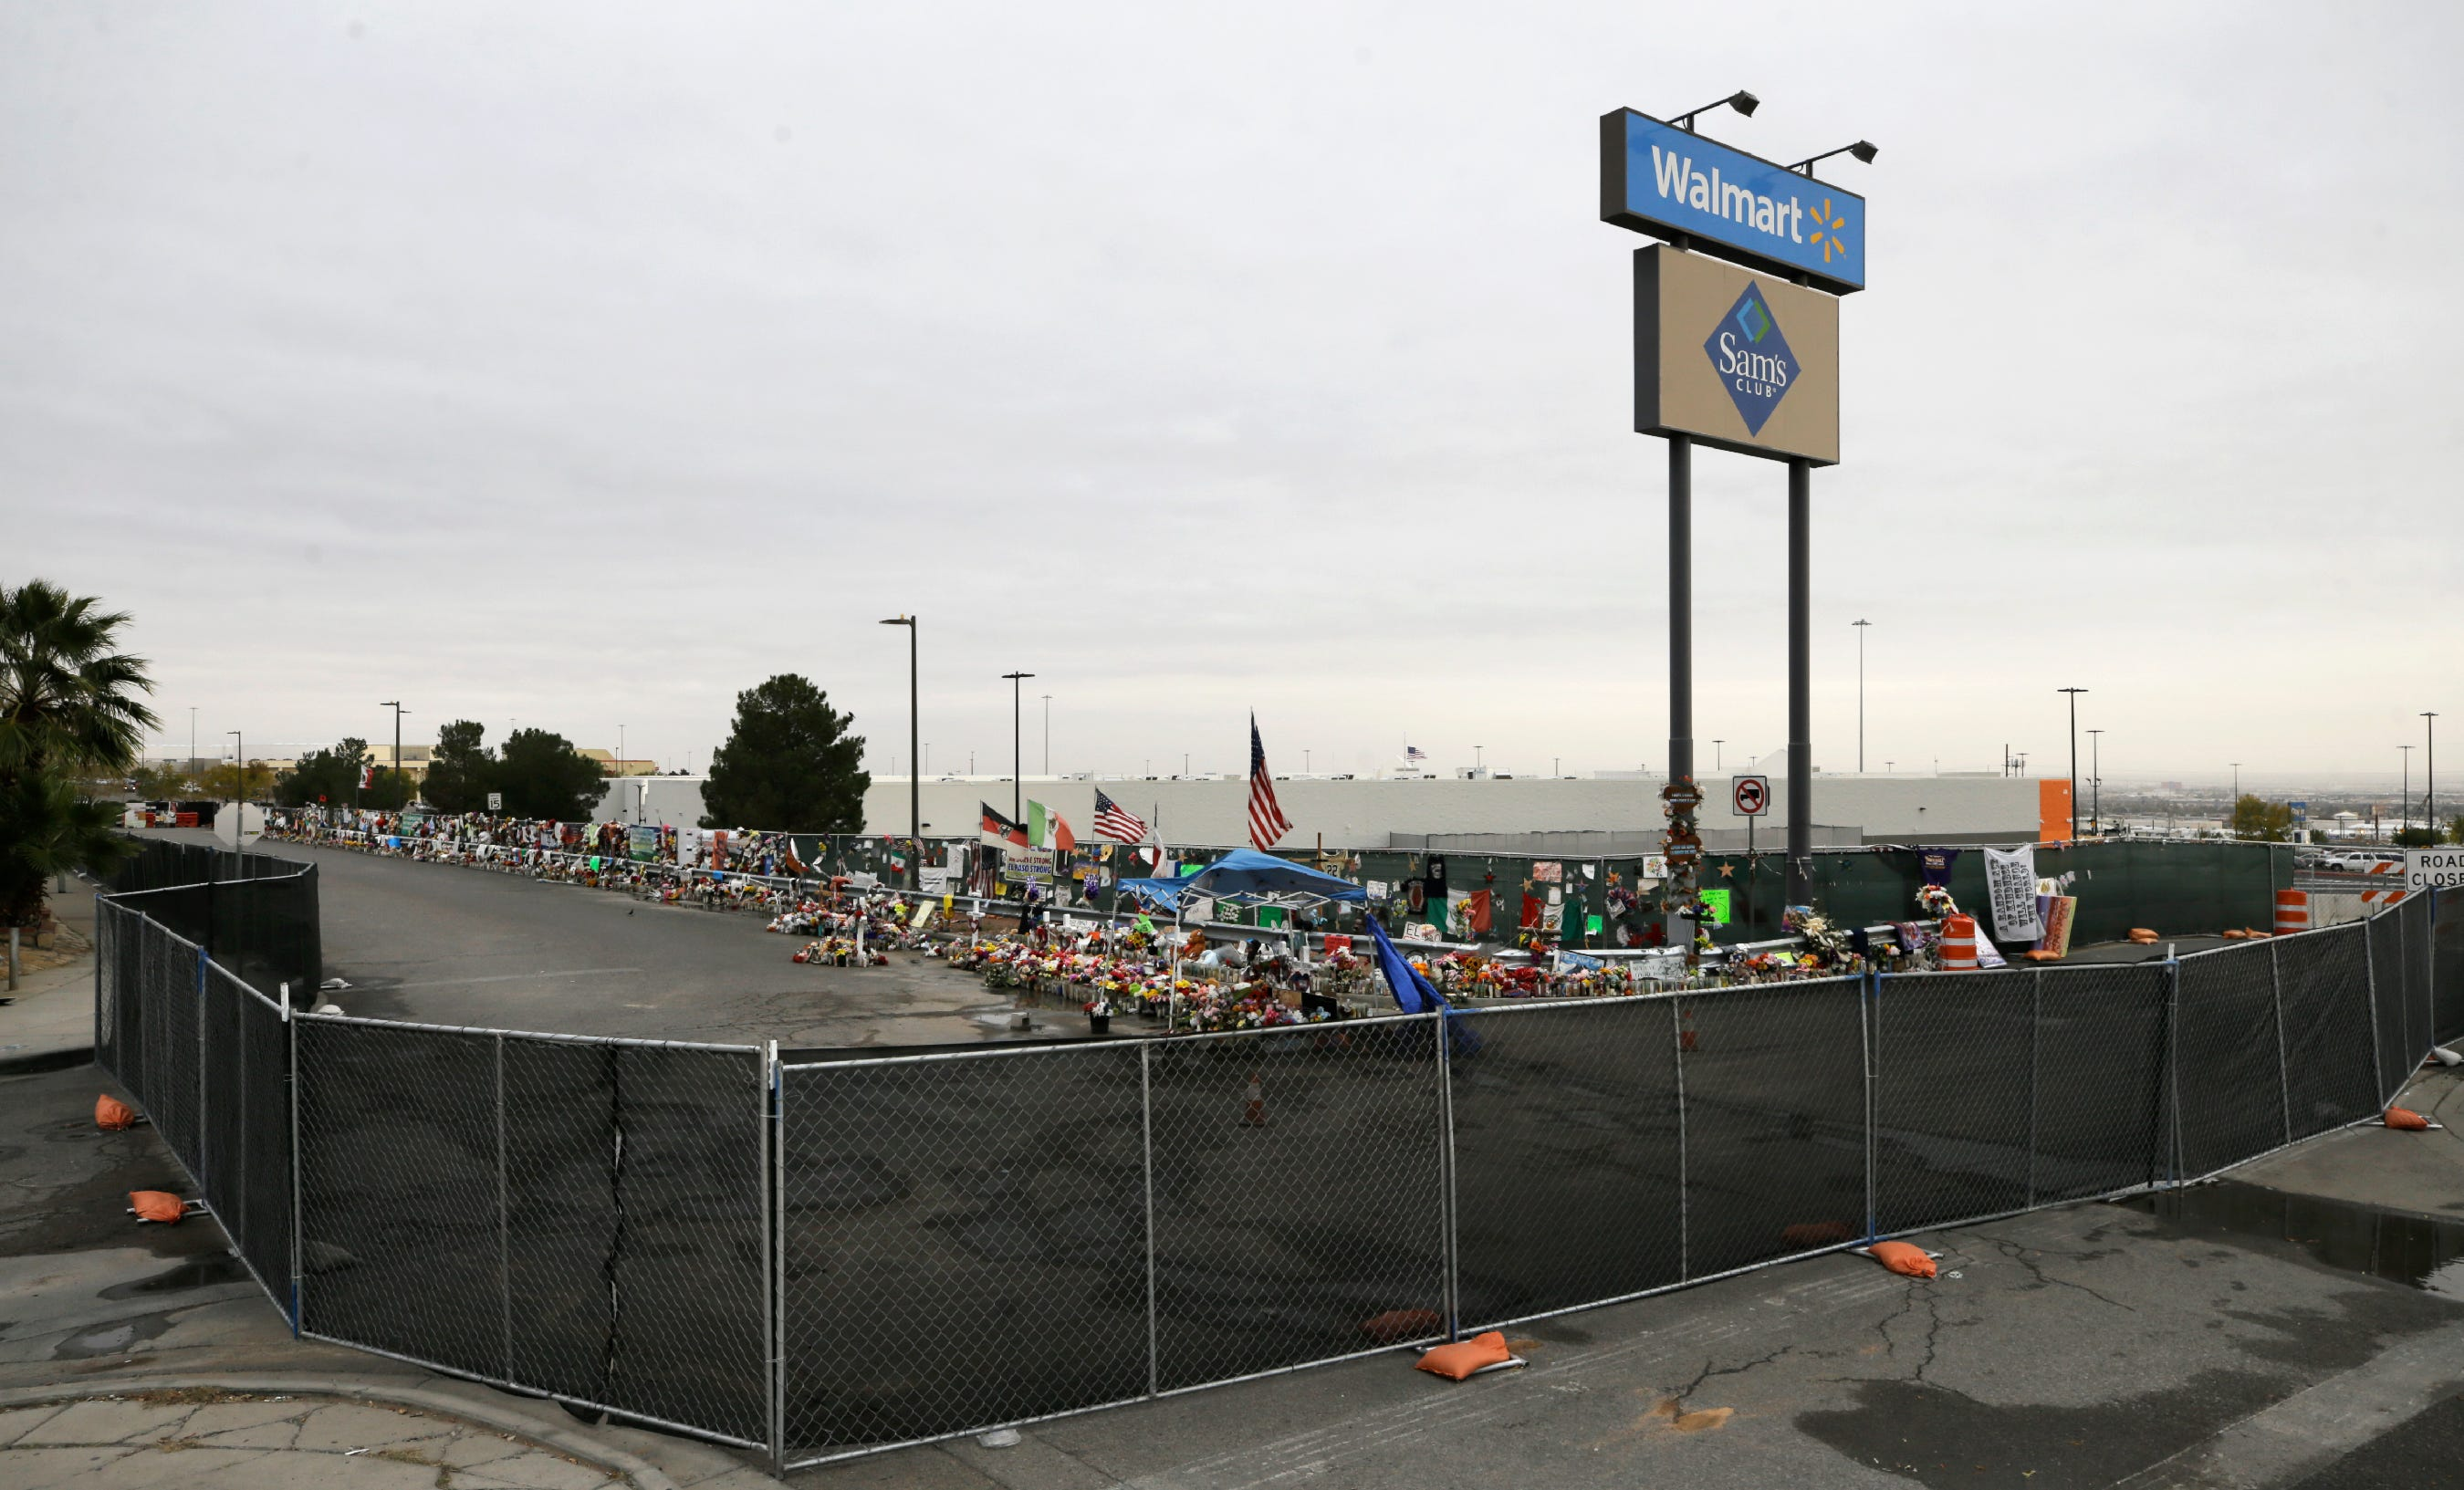 Shooting memorial removed, Walmart set to reopen Thursday